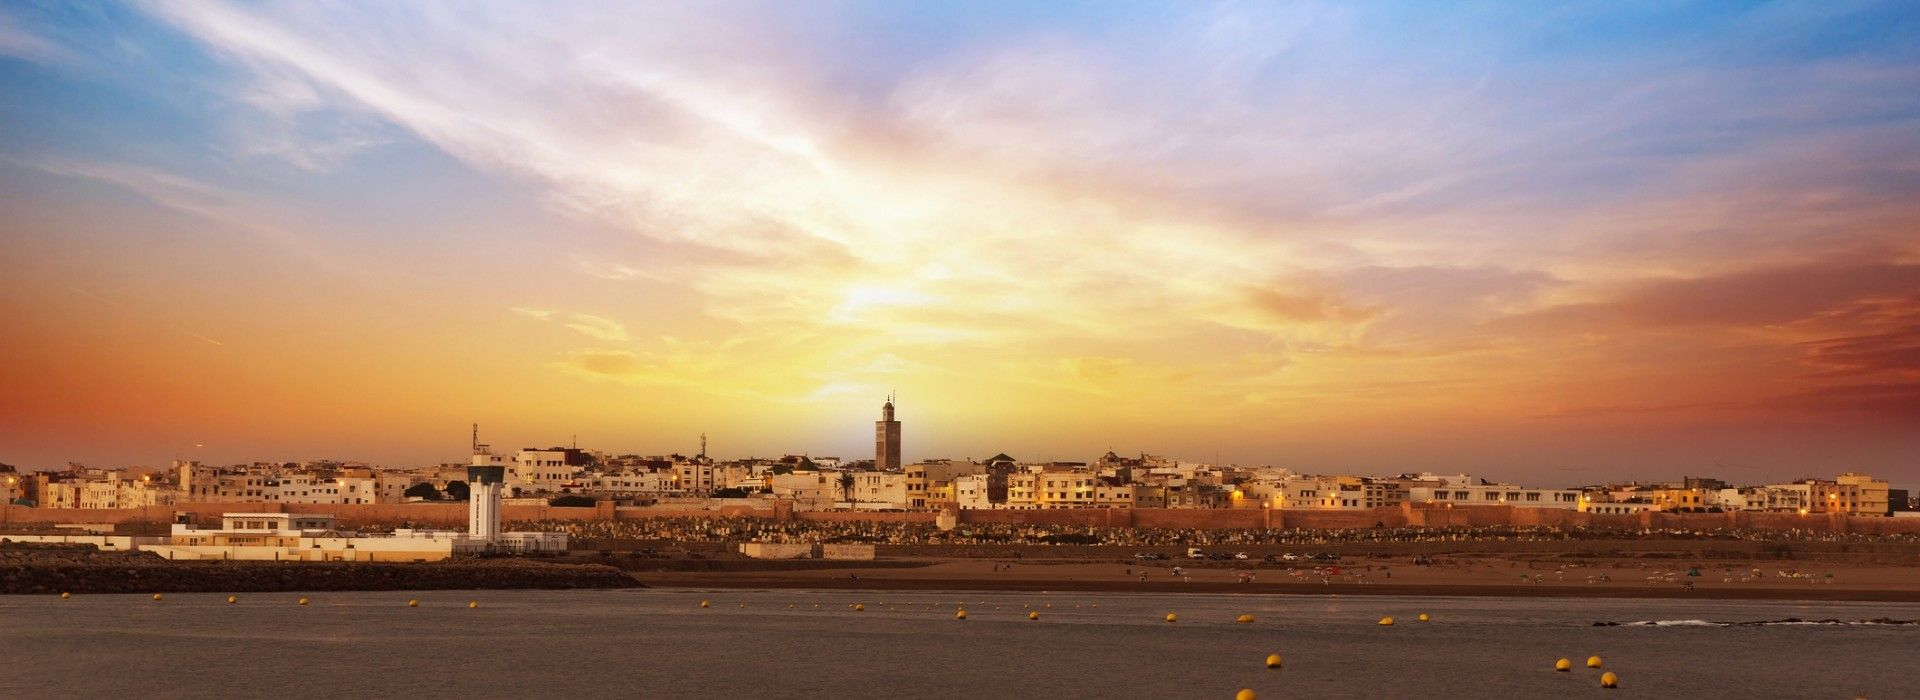 Sightseeing, attractions, culture and history Tours in Fez